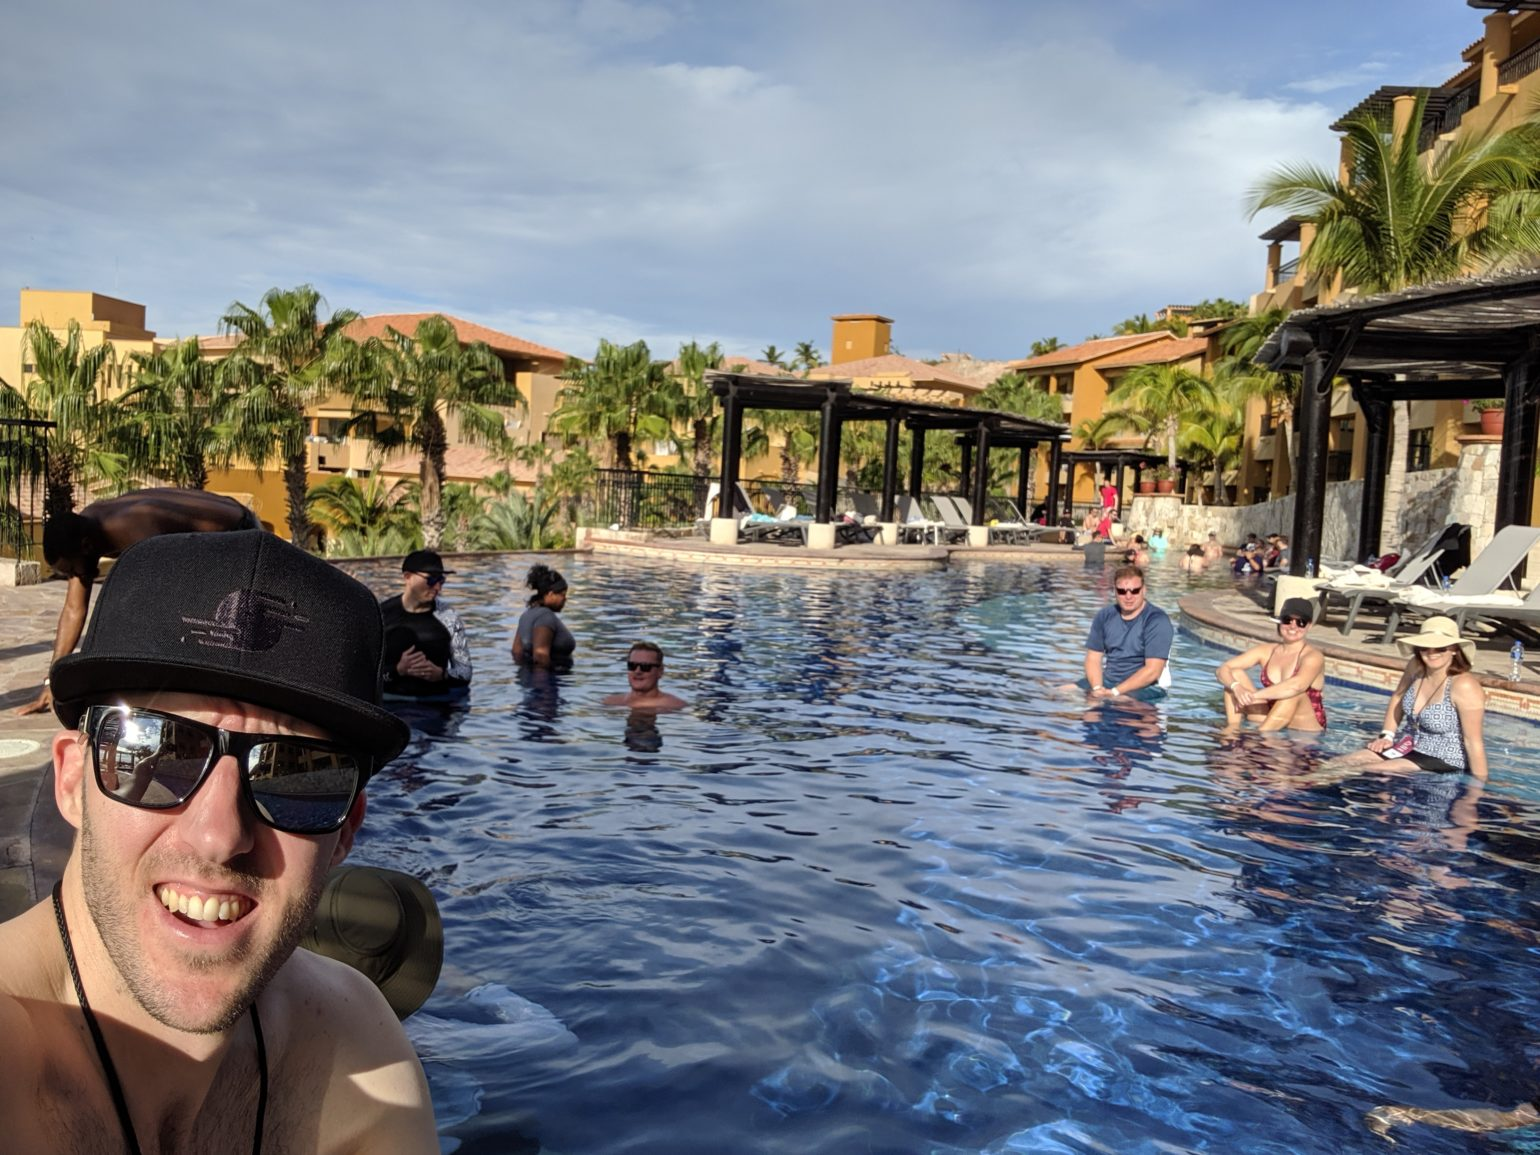 Photo of Brad in the pool